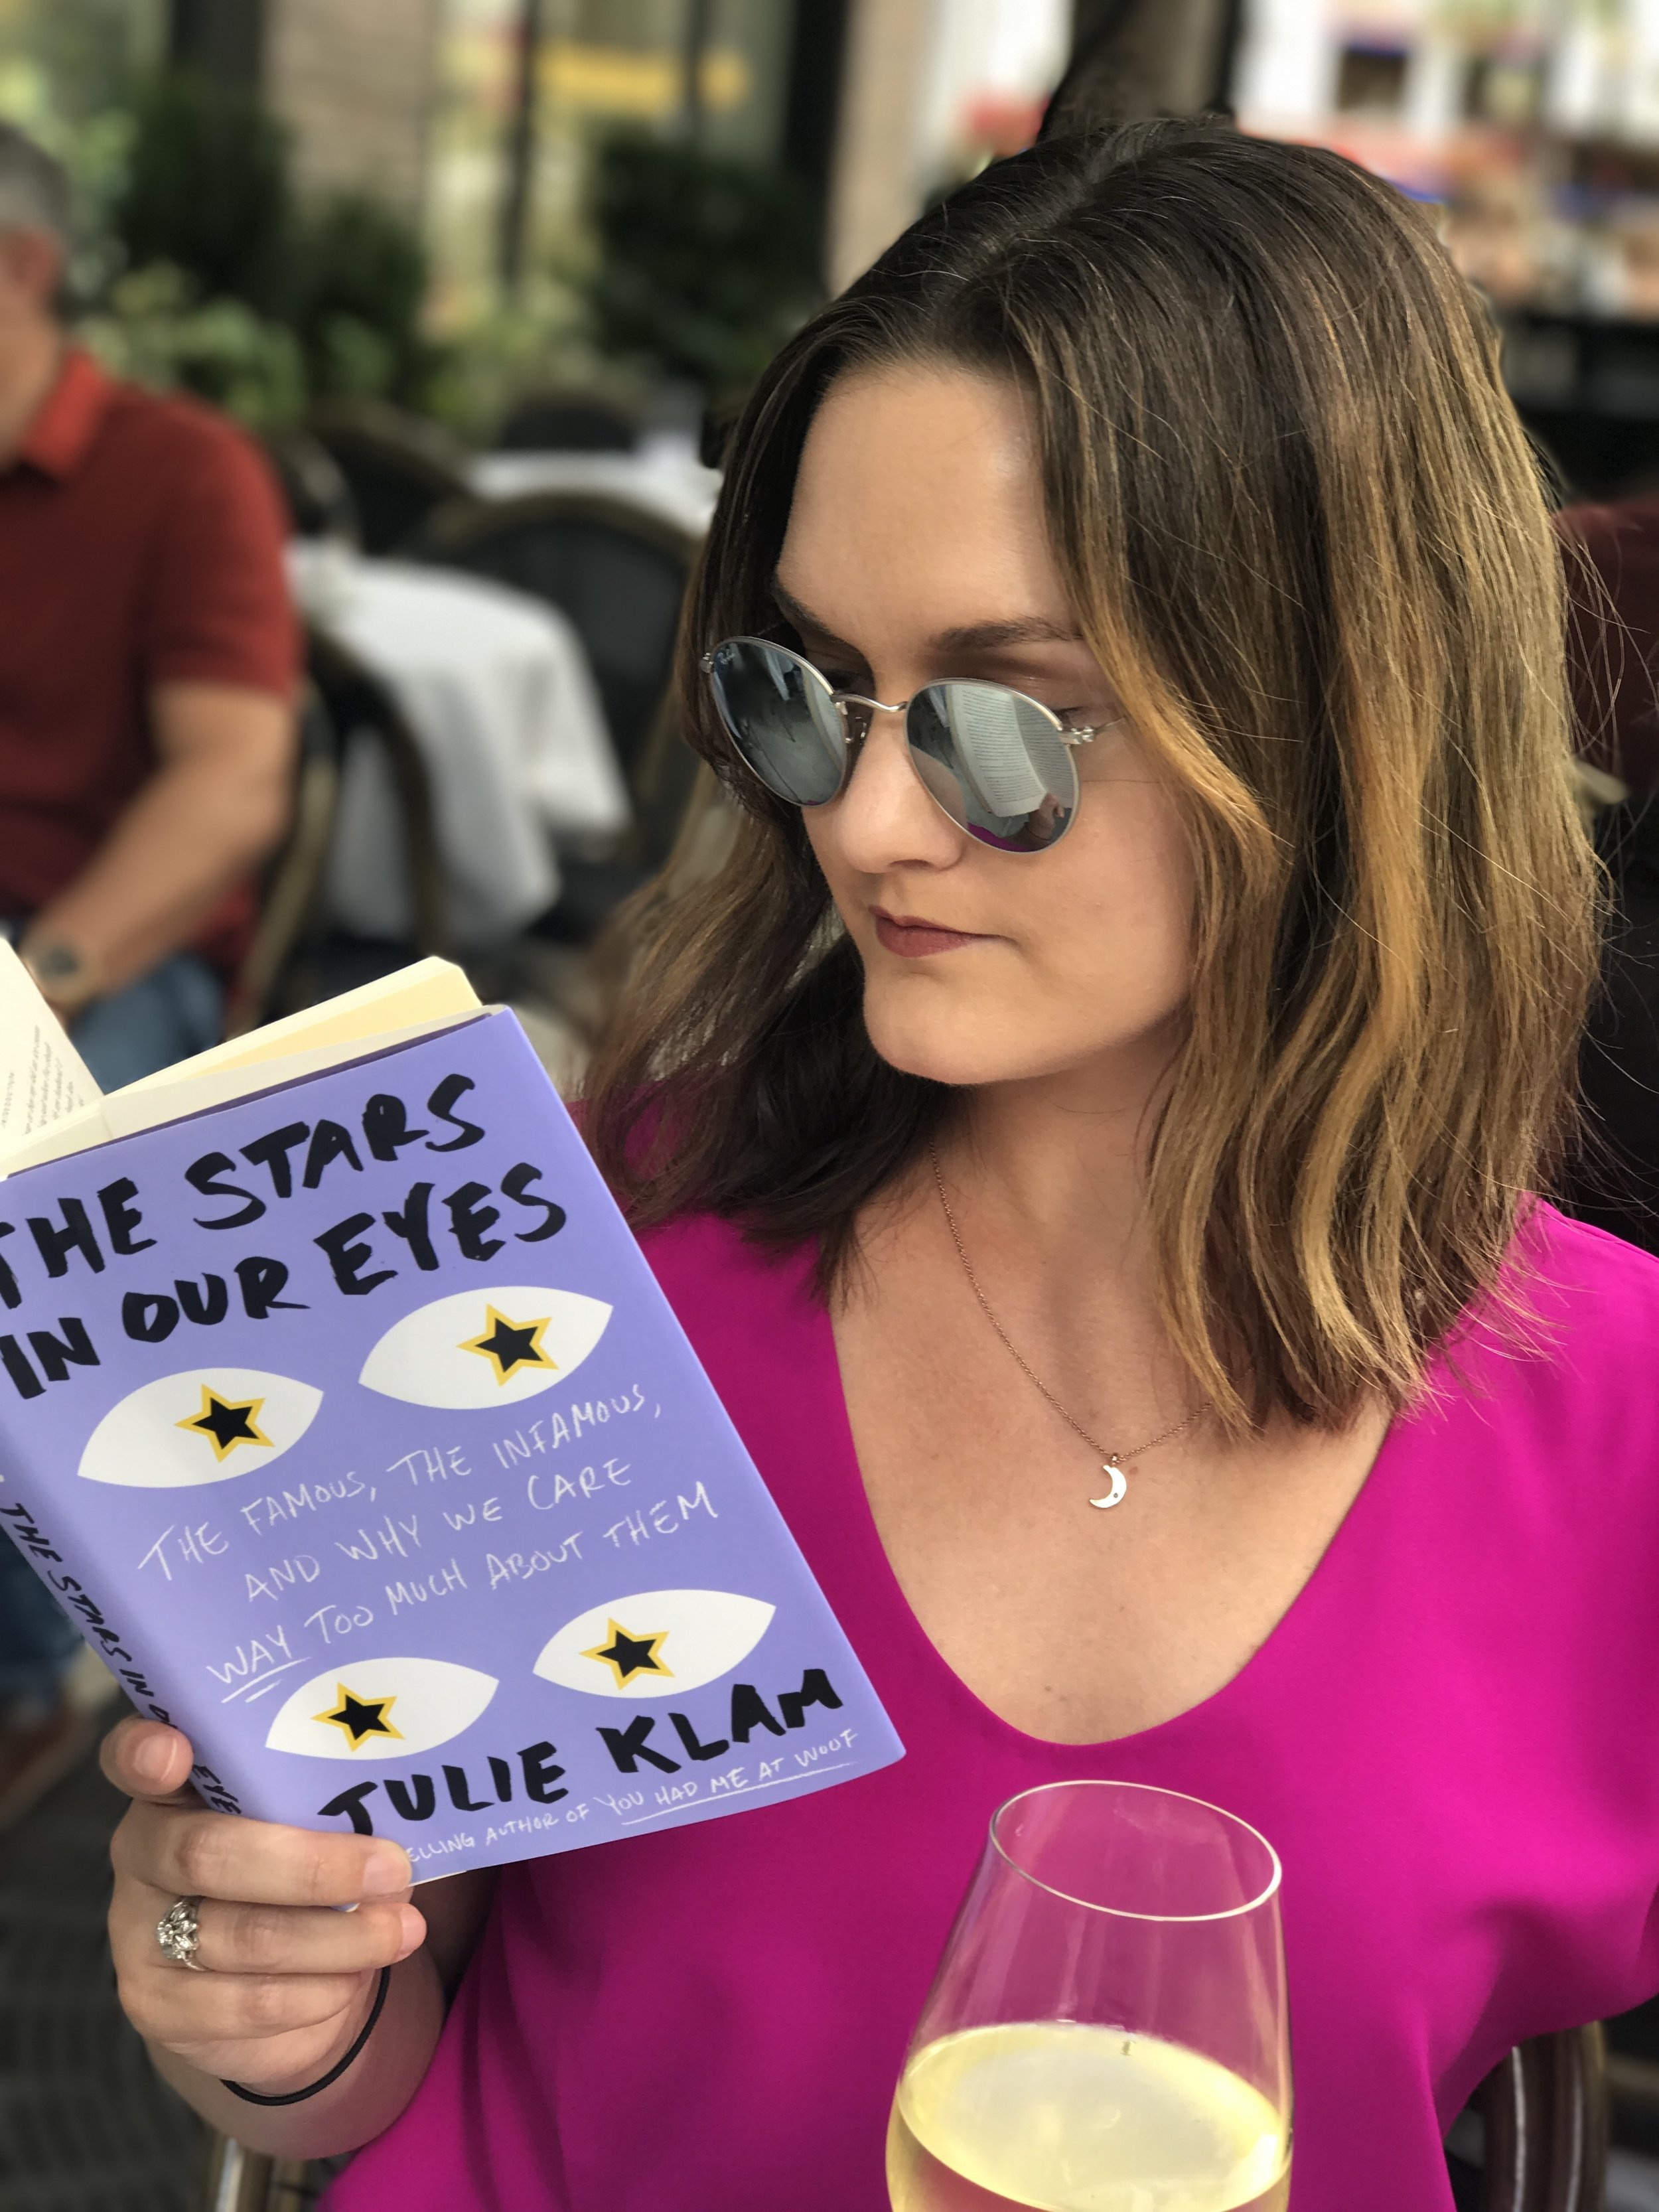 5 Ways All Book-Lovers Should Treat Themselves on 'Treat Yo Self' Day: 2. Read for as long as you want without guilt